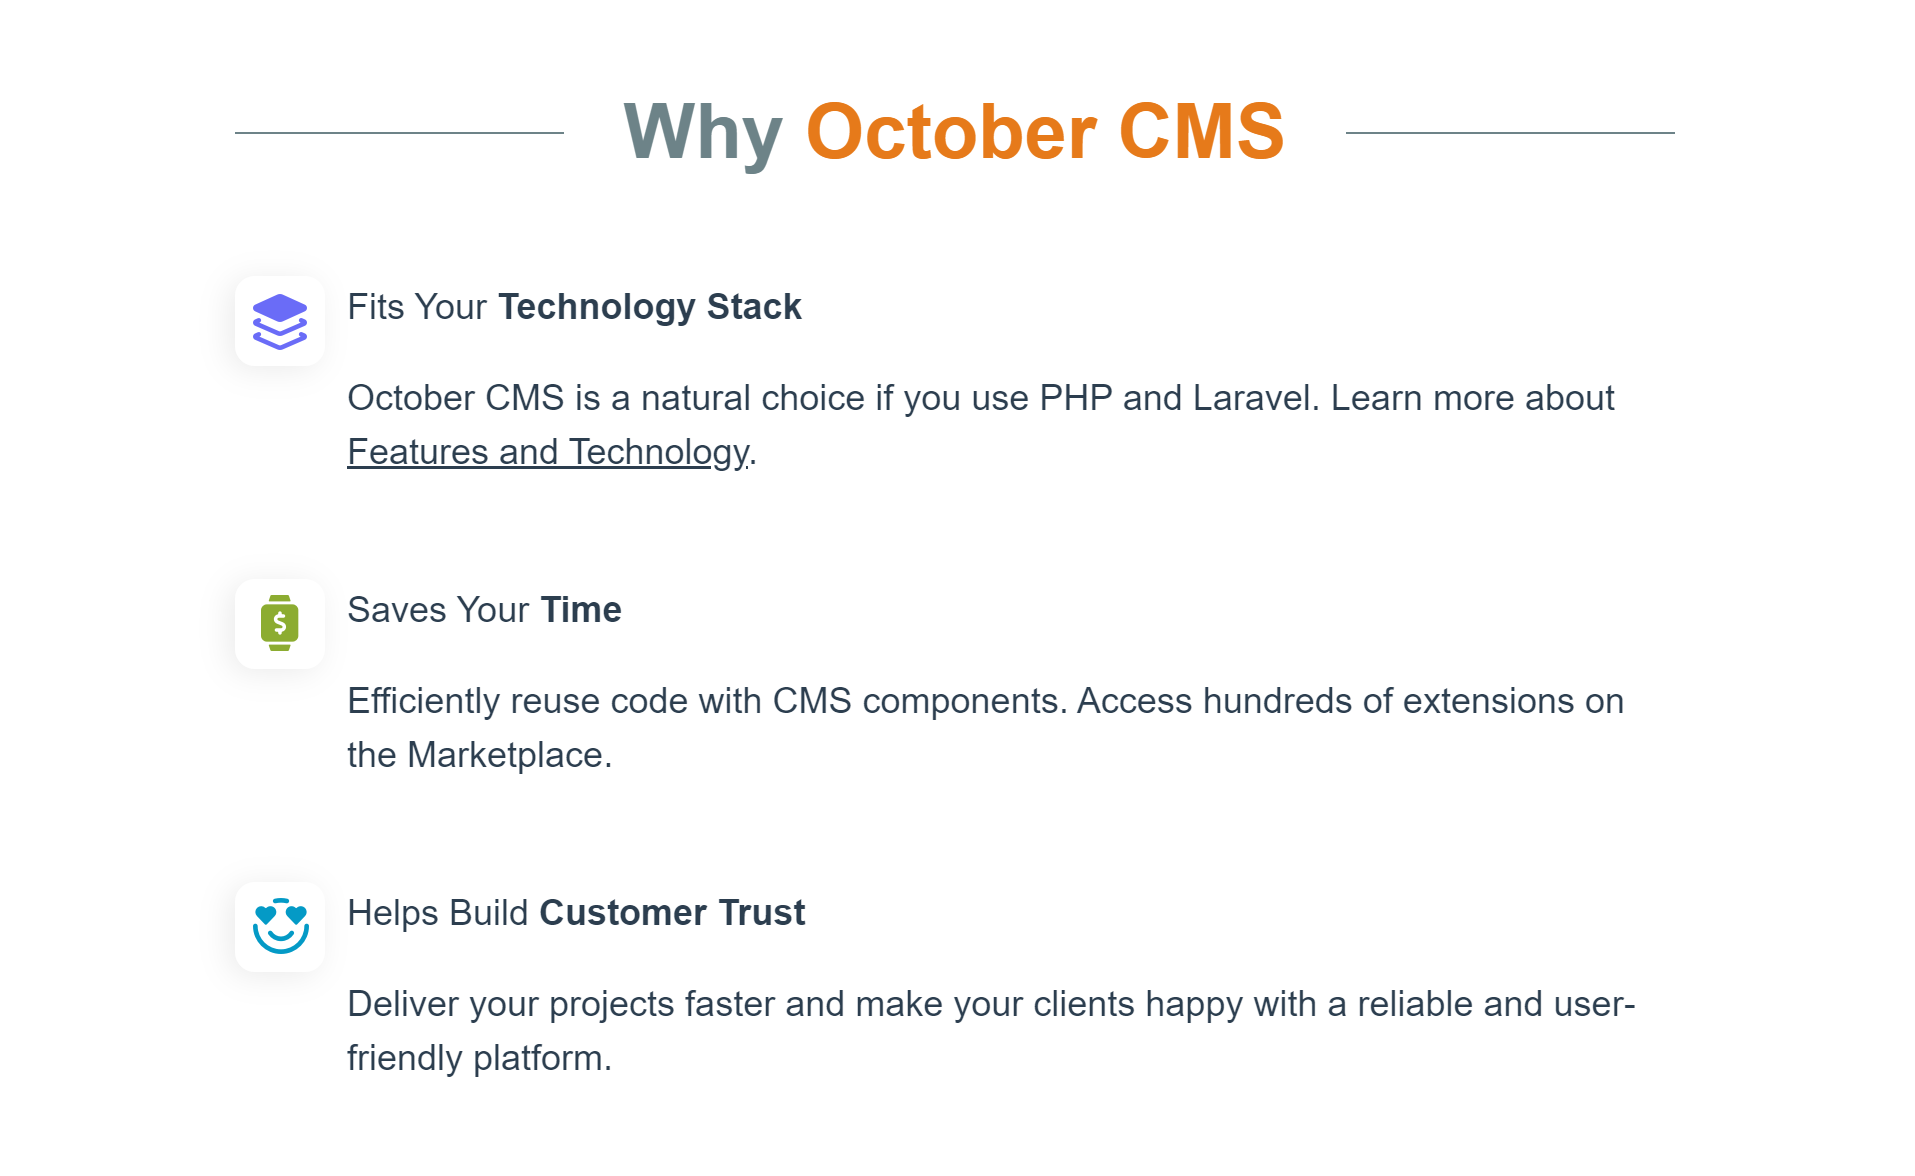 Reasons to choose October CMS